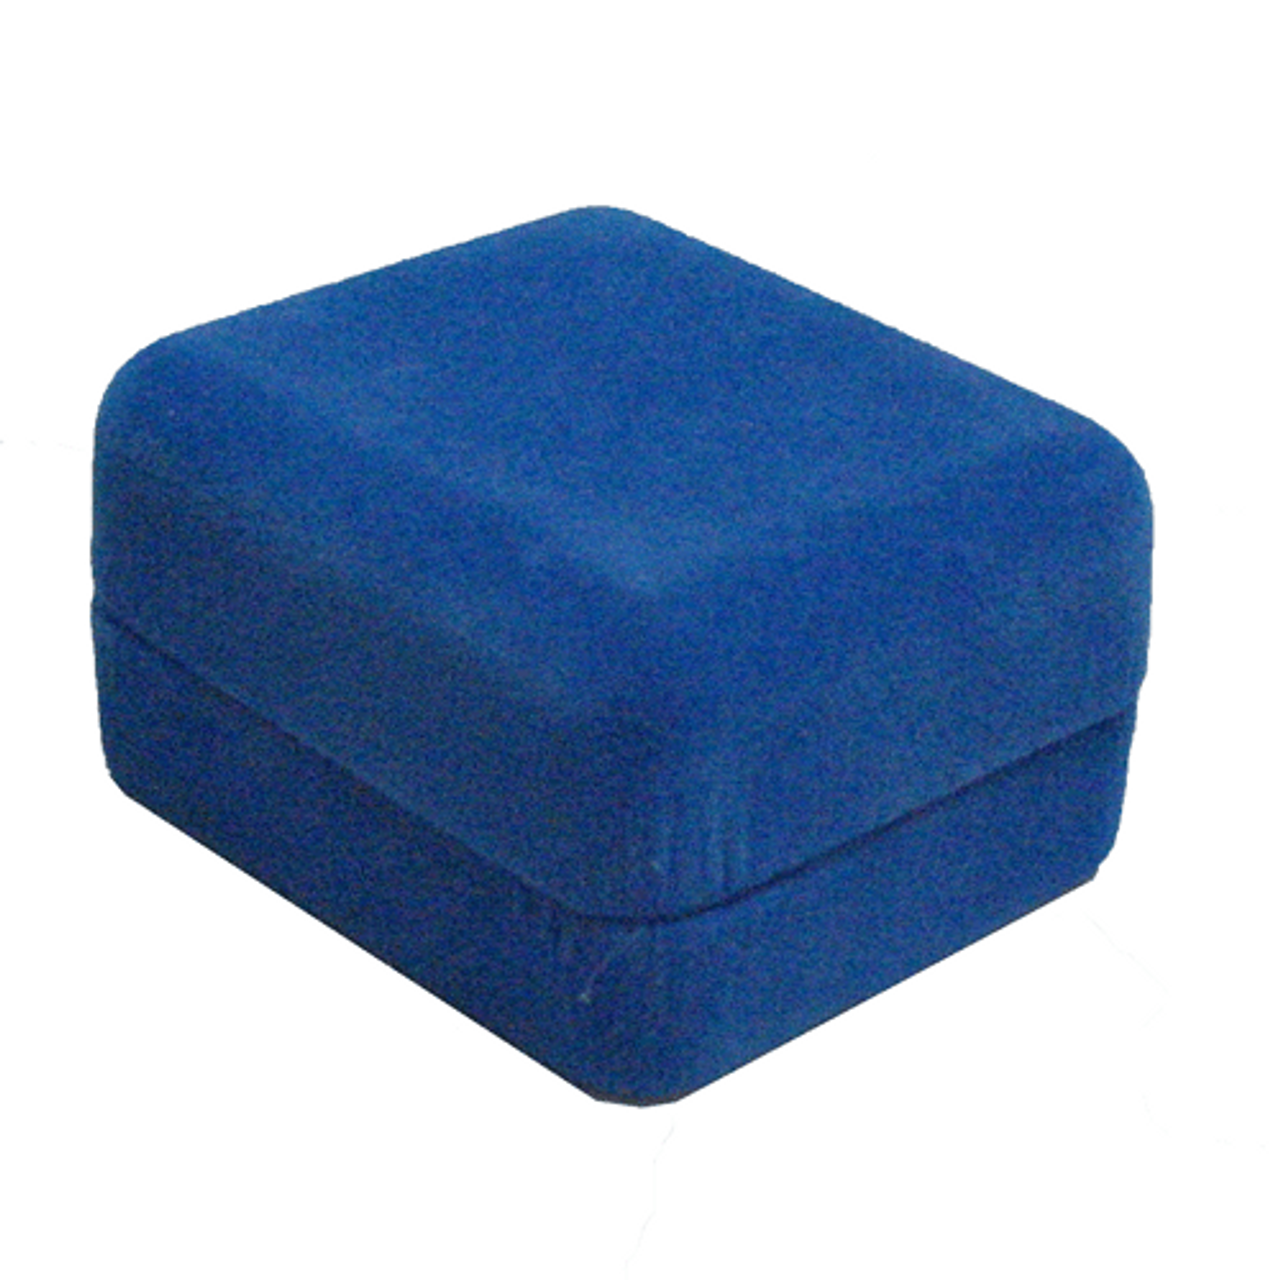 Blue Ecosuede Box with Ring Foam Insert